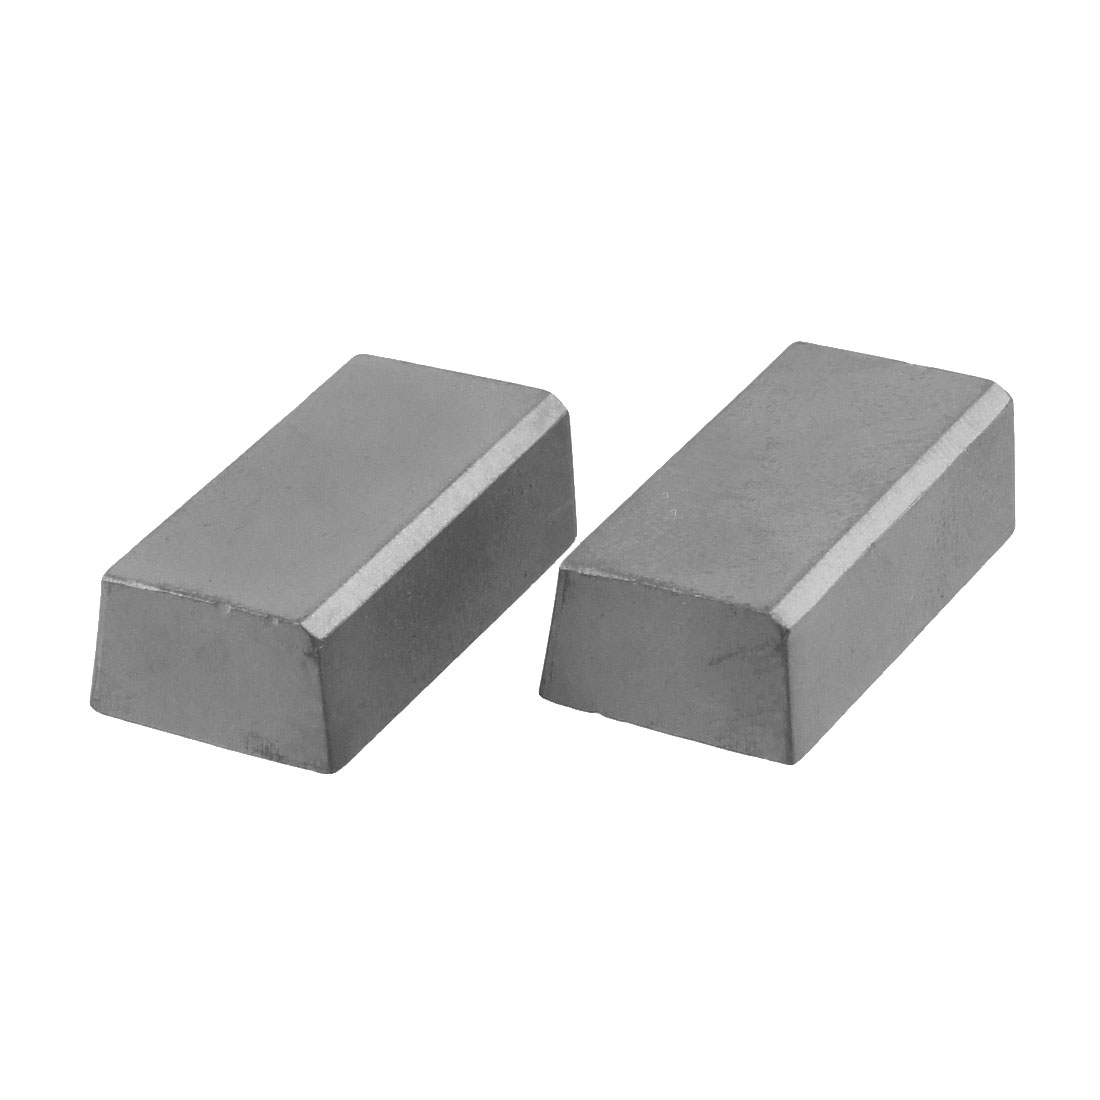 2 Pcs Welding Blade Hard Alloy Square Cemented Carbide Inserts